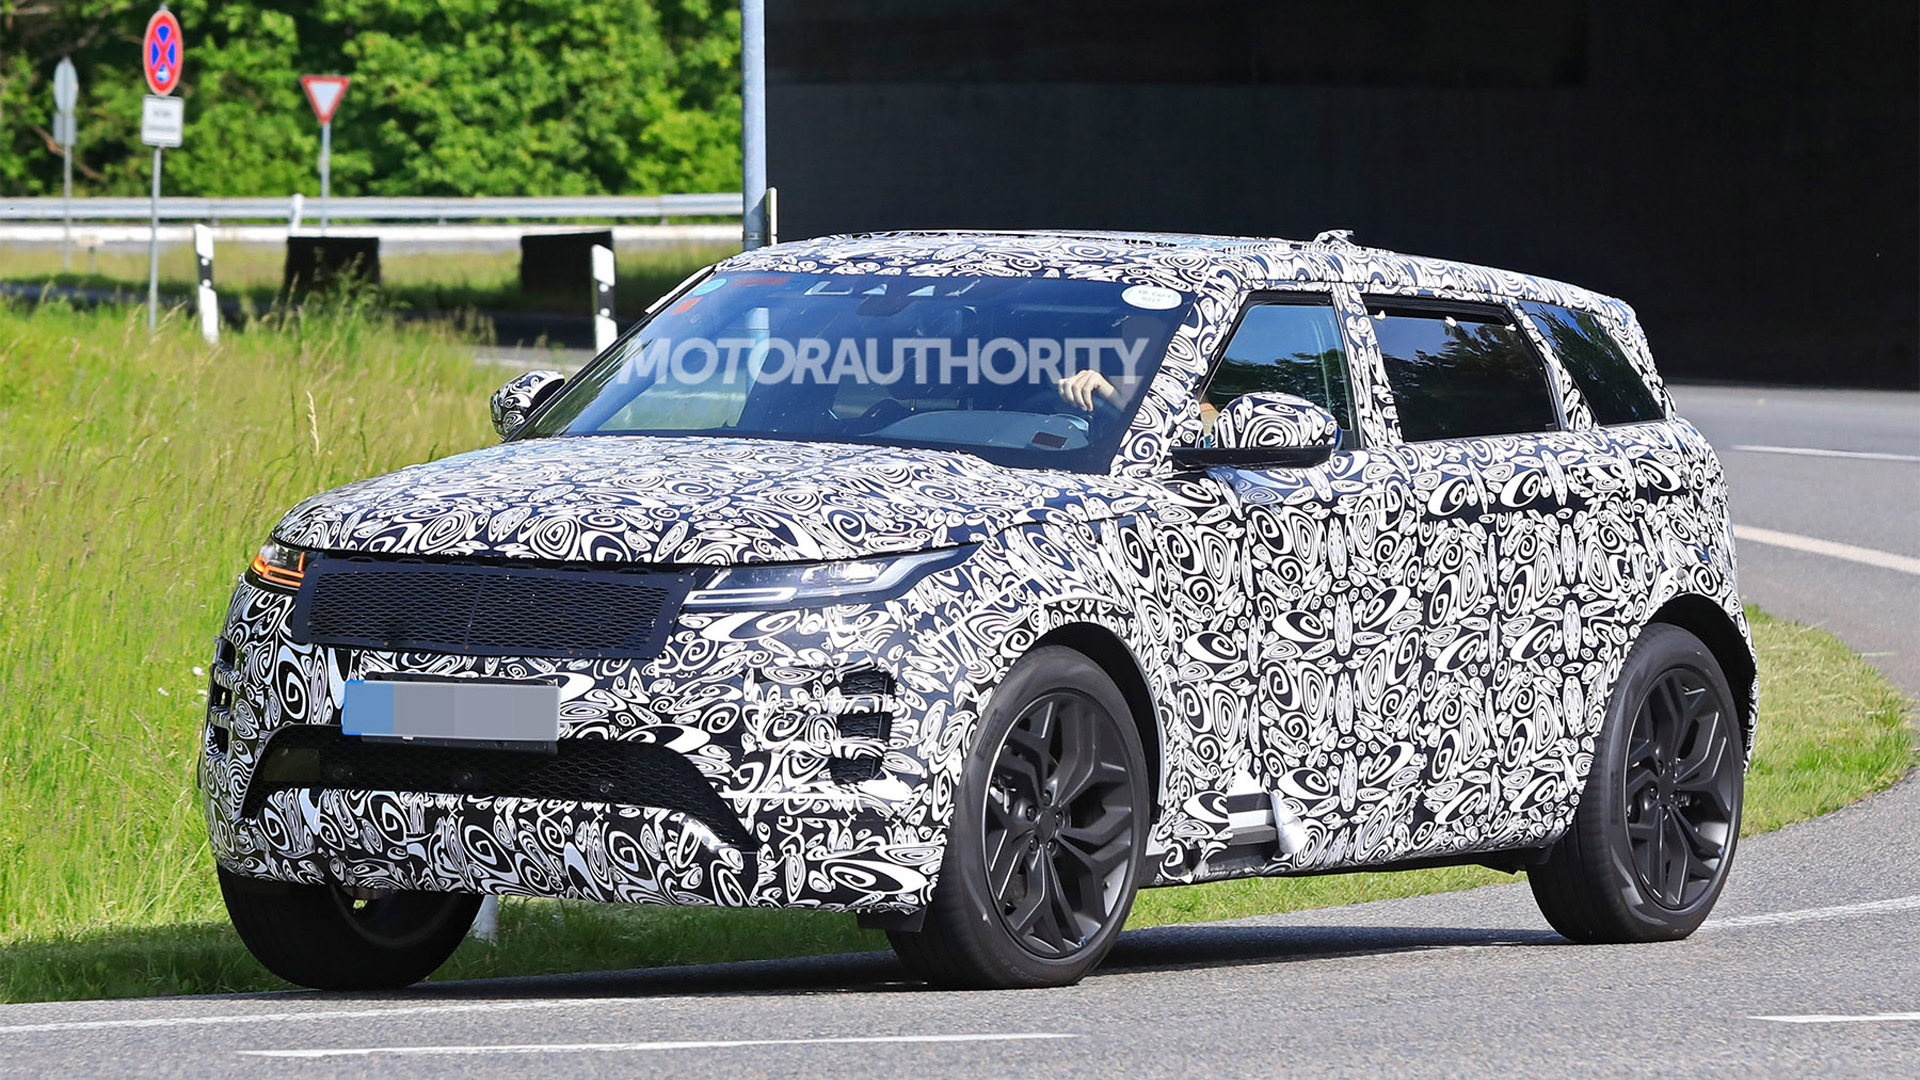 2021 Land Rover Range Rover Evoque Long Wheelbase spy shots – Photo credit: S. Baldauf/SB-Medien